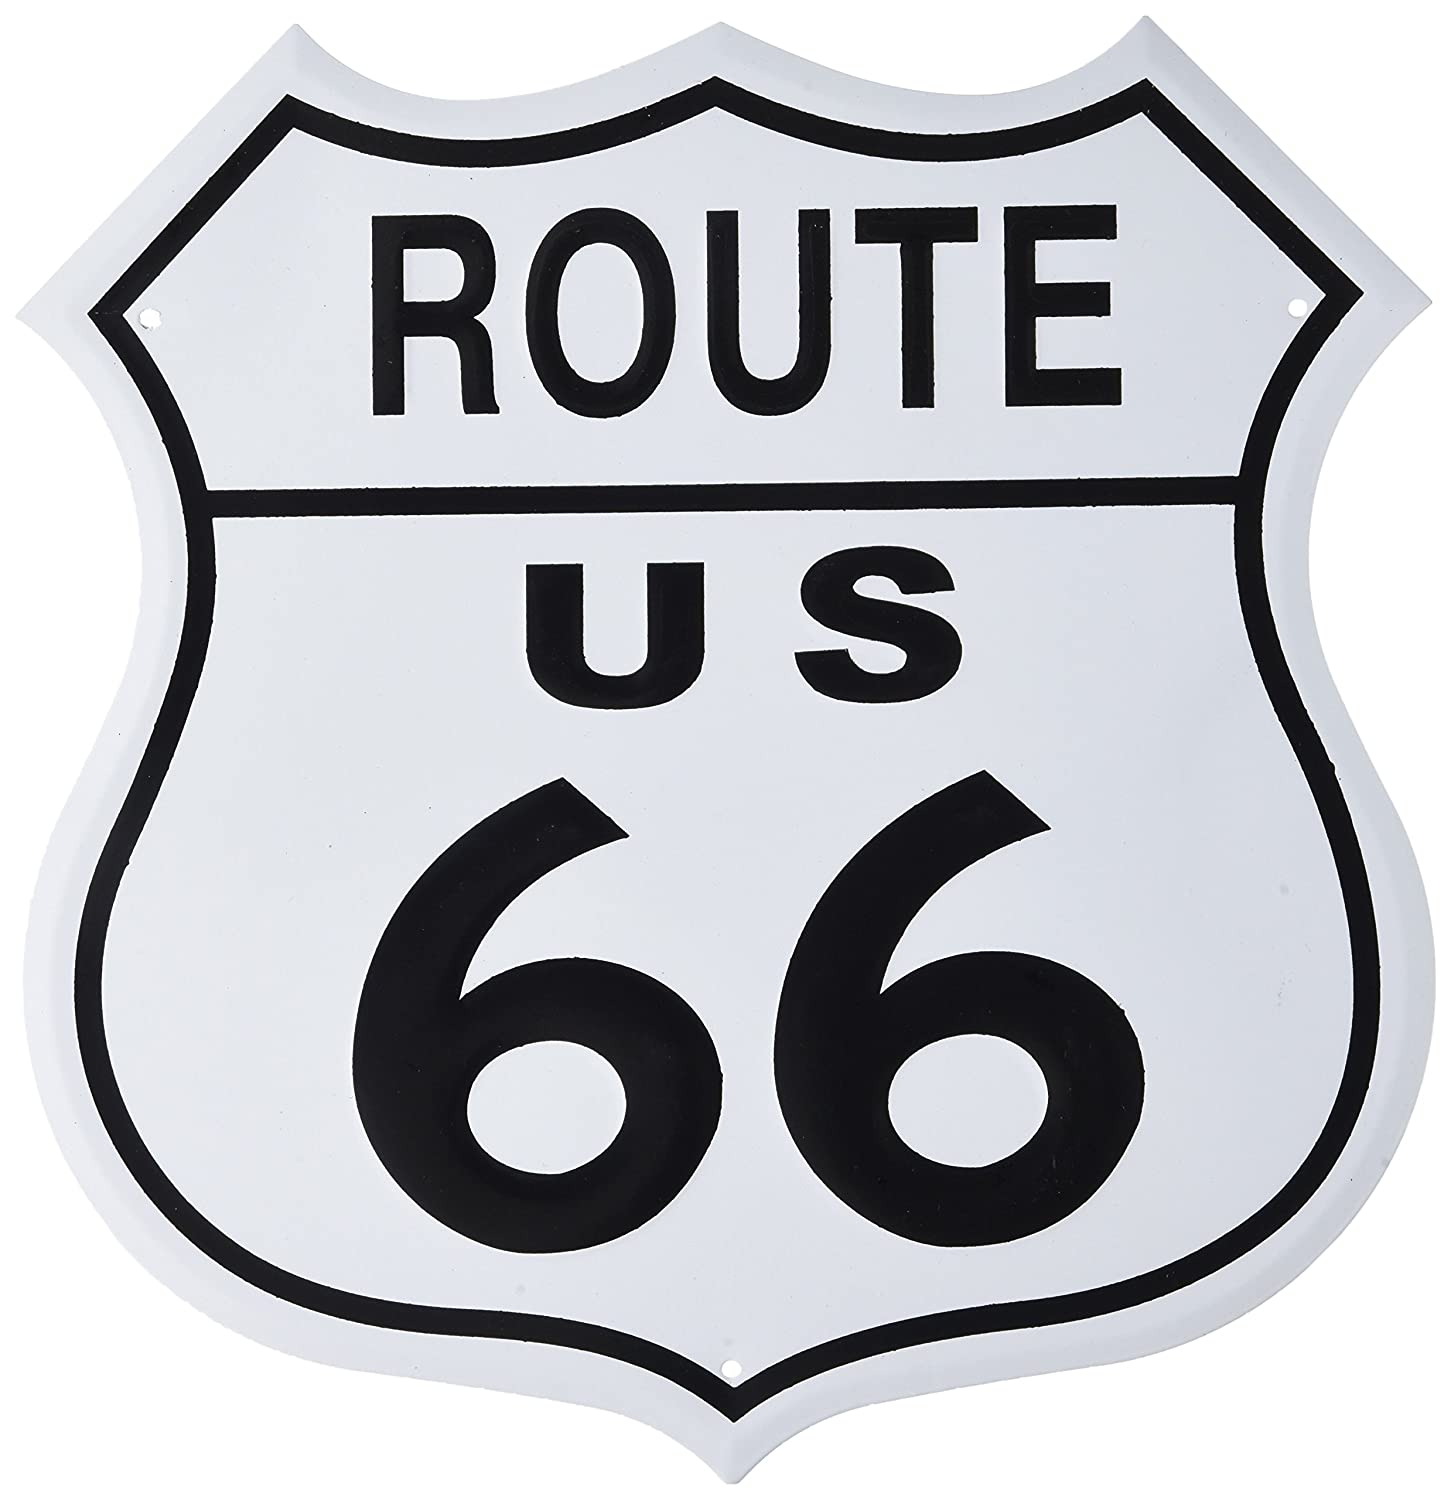 Amazon.com: Adorox US Route 66 escudo cartel de chapa